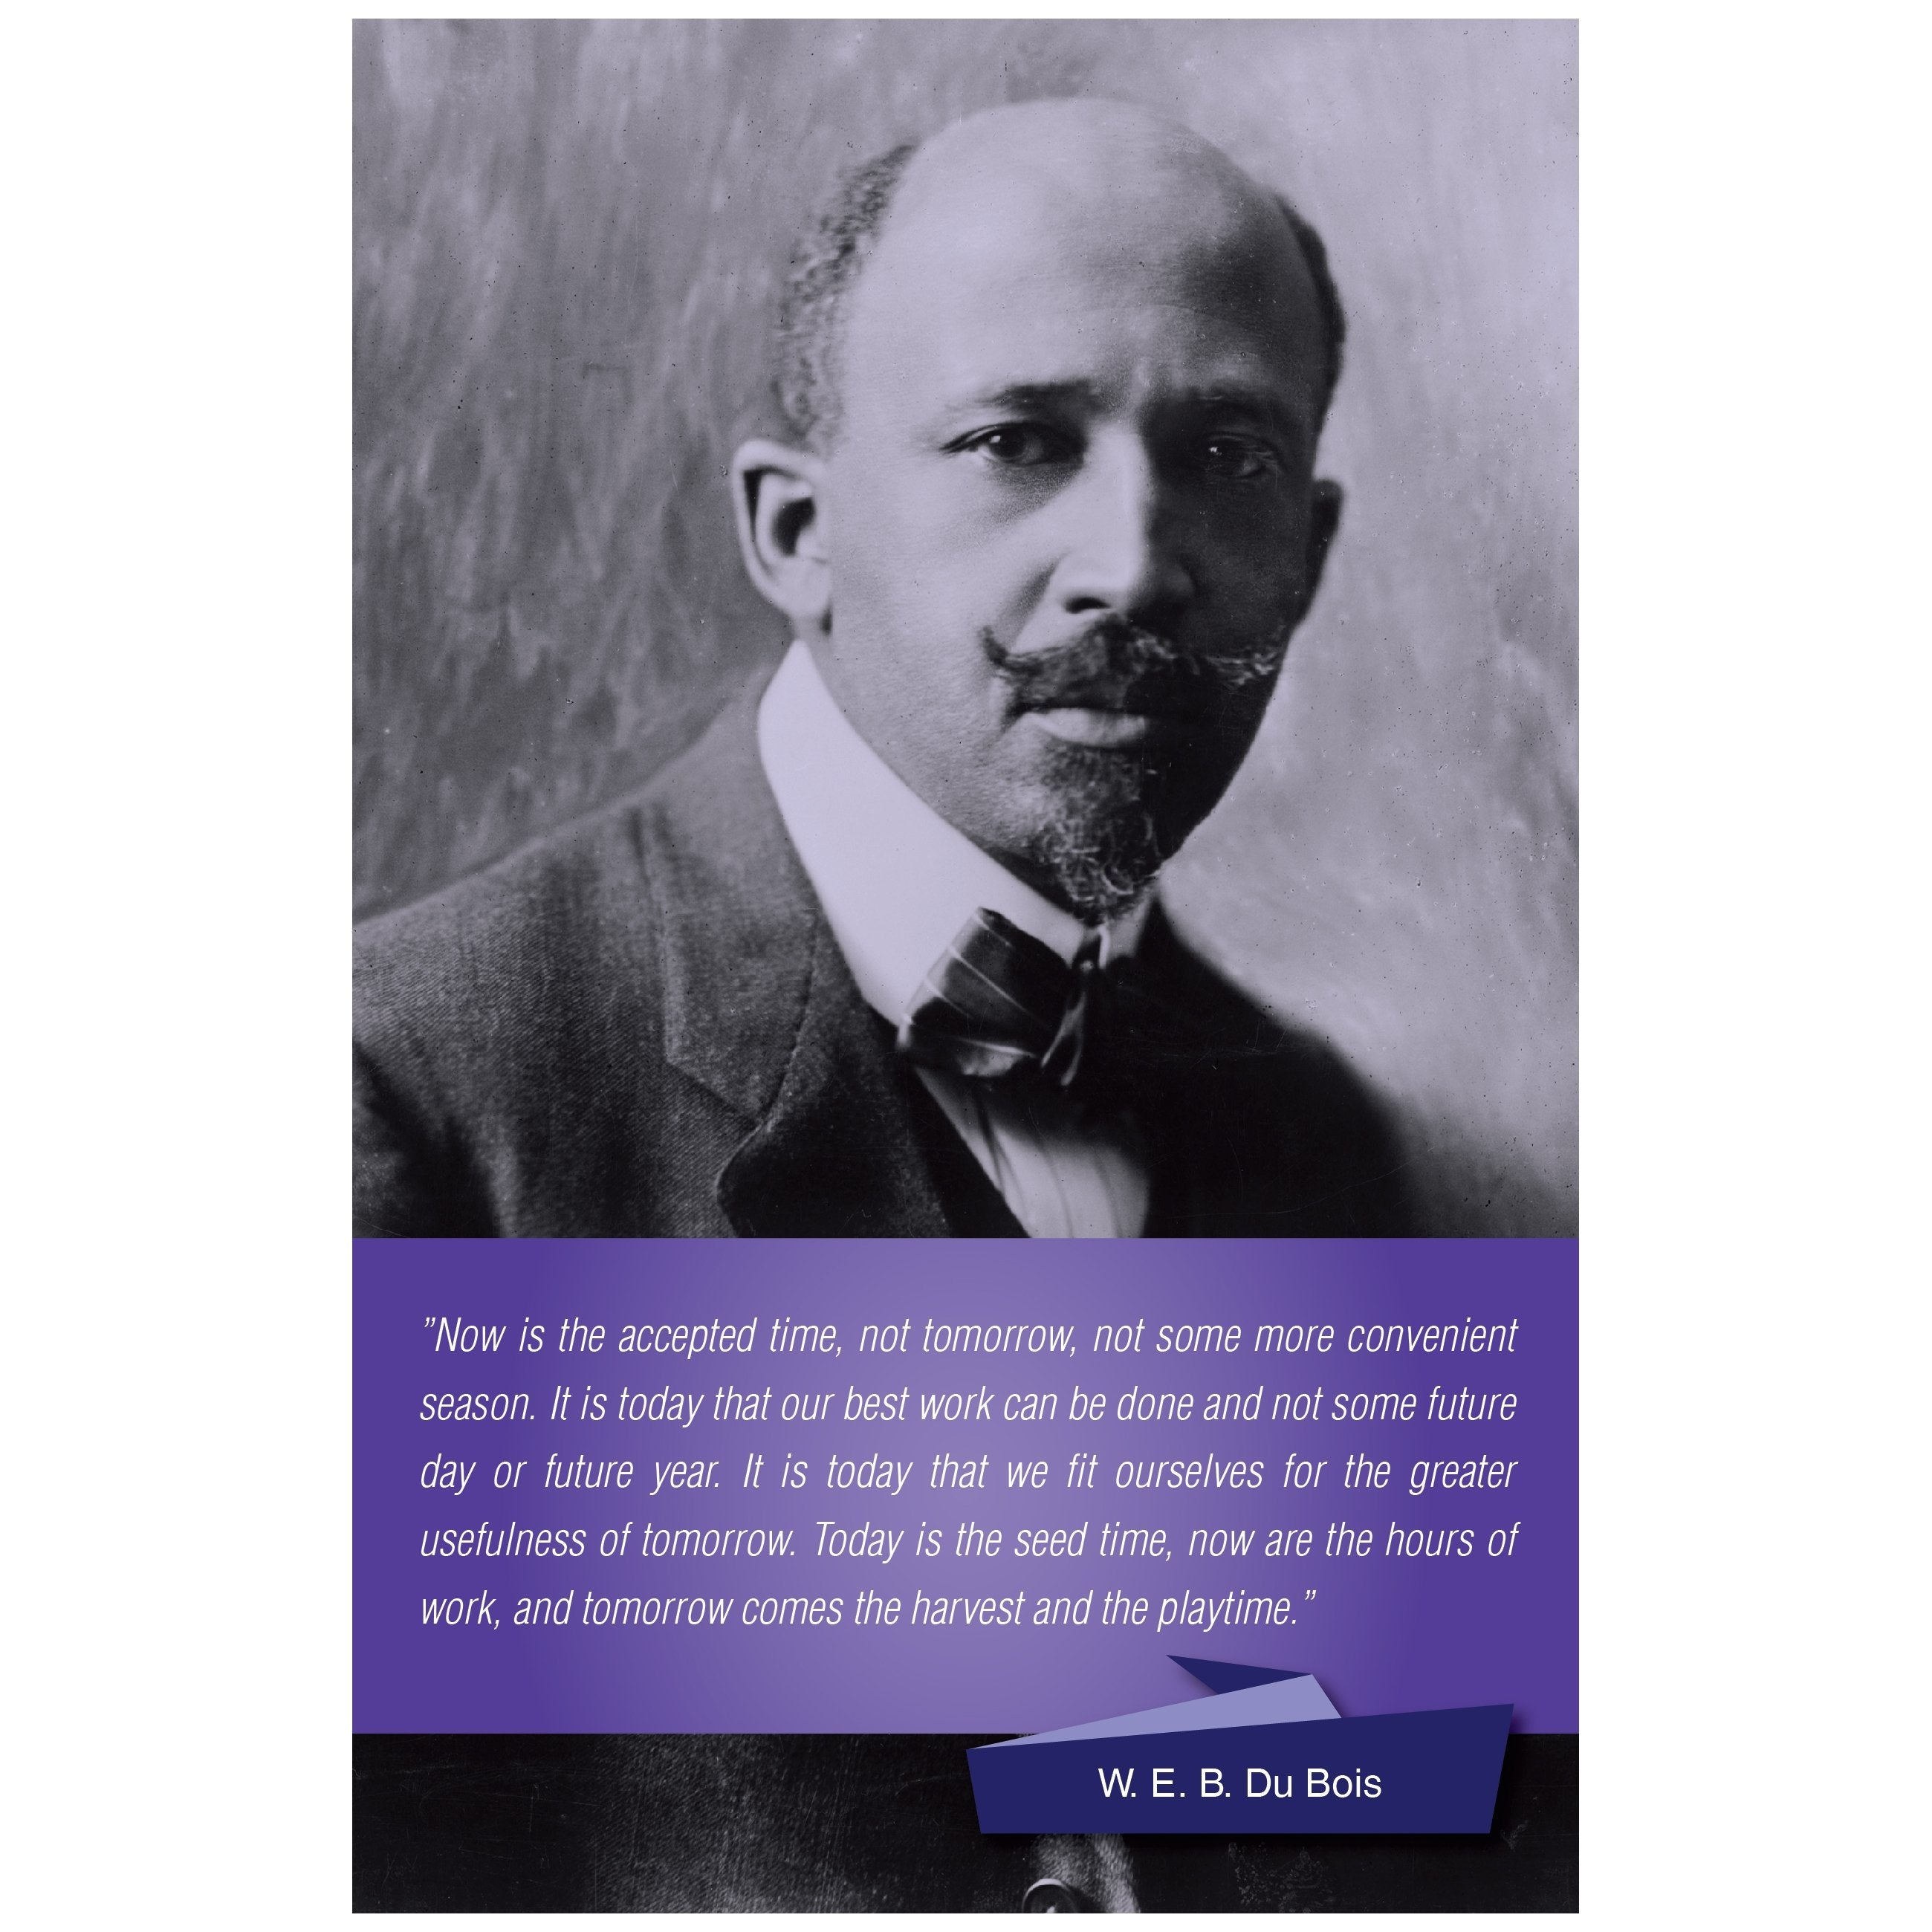 W.E.B. DuBois: The Time is Now Poster by Sankofa Designs